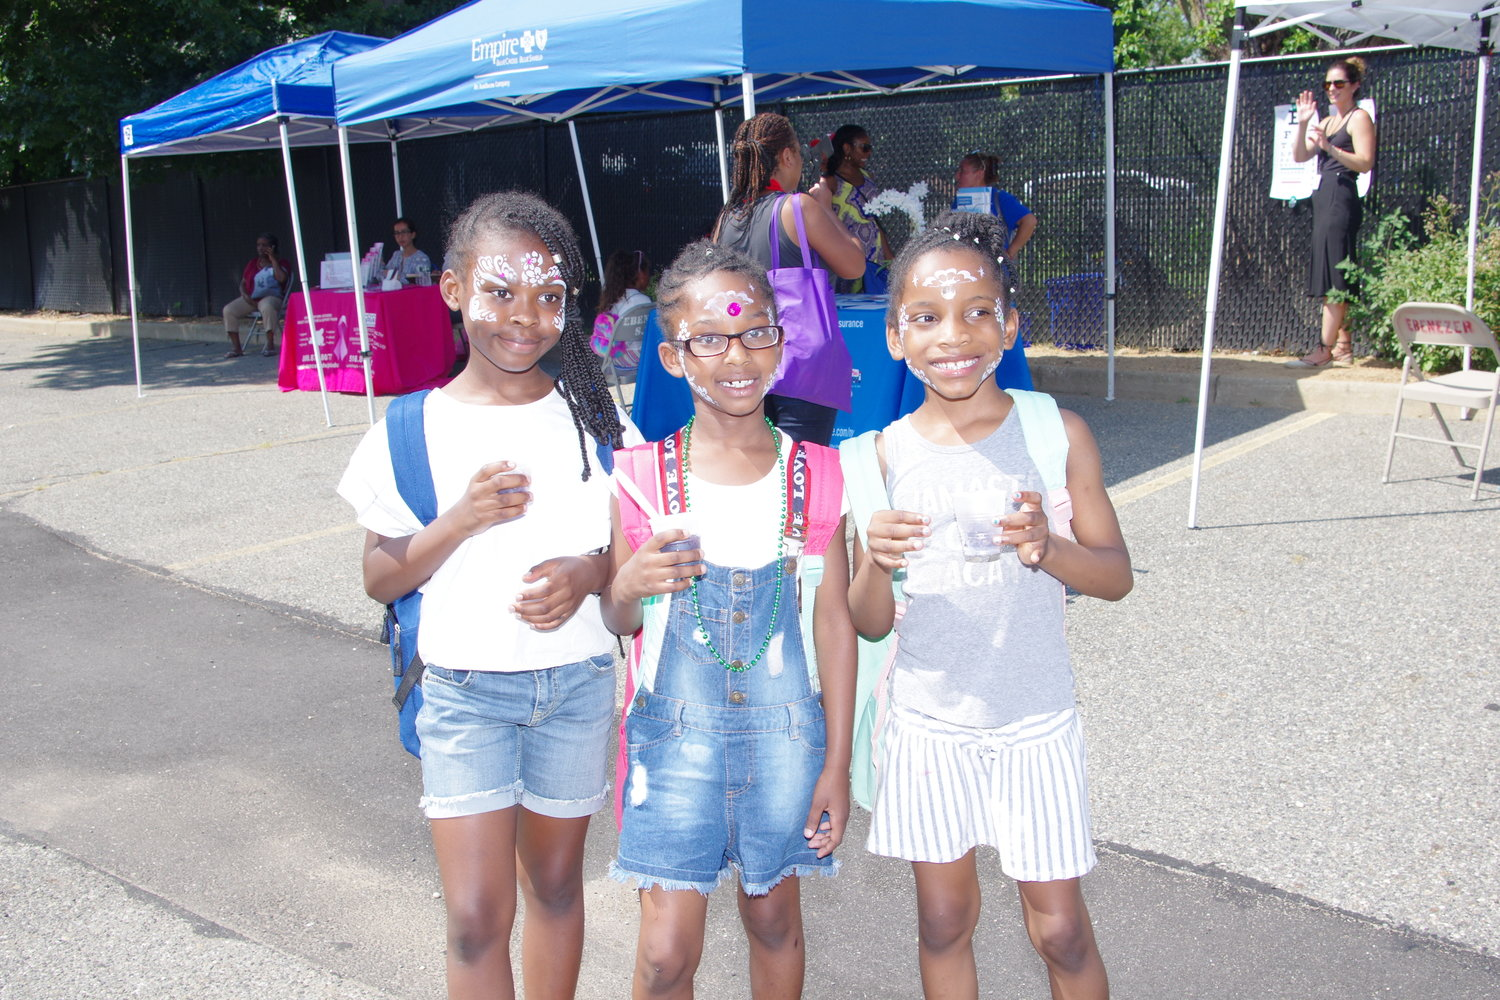 Health Fair attendees, Janay Gray, 9, right, Kylie-Monet Alleyne,7, and Leilani Wachuku, 7,left, enjoyed smoothies after getting their faces painted.